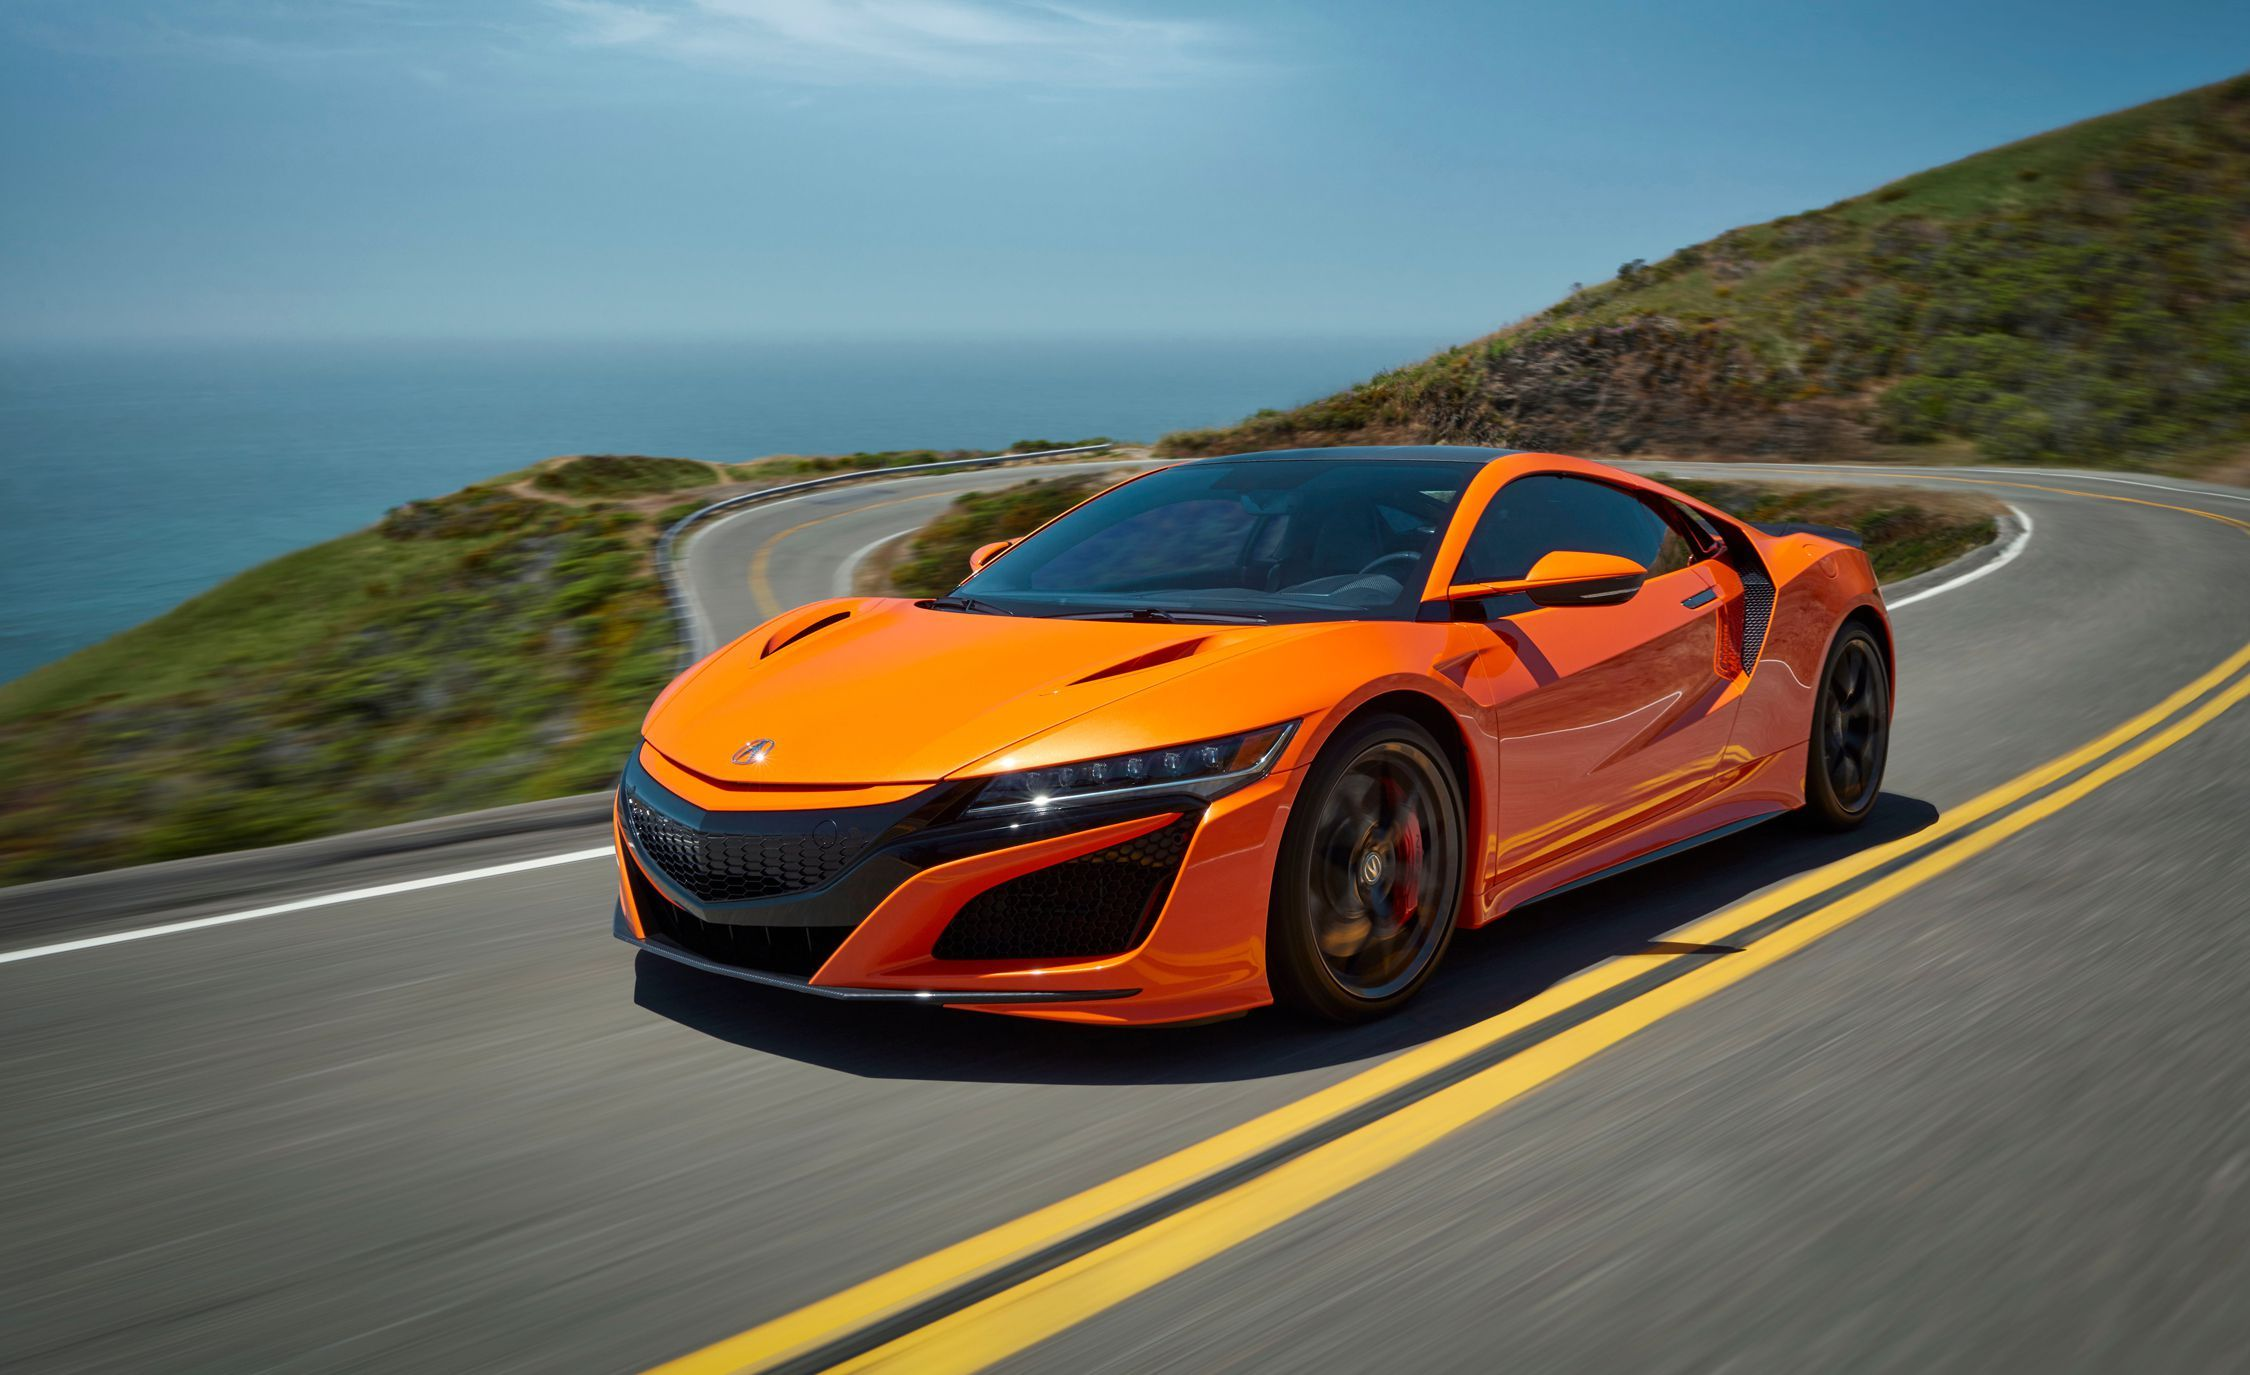 2019 Acura Nsx Gets A Nose Job A Better Chassis And More Orange Photos Acura Nsx Nsx Japanese Sports Cars